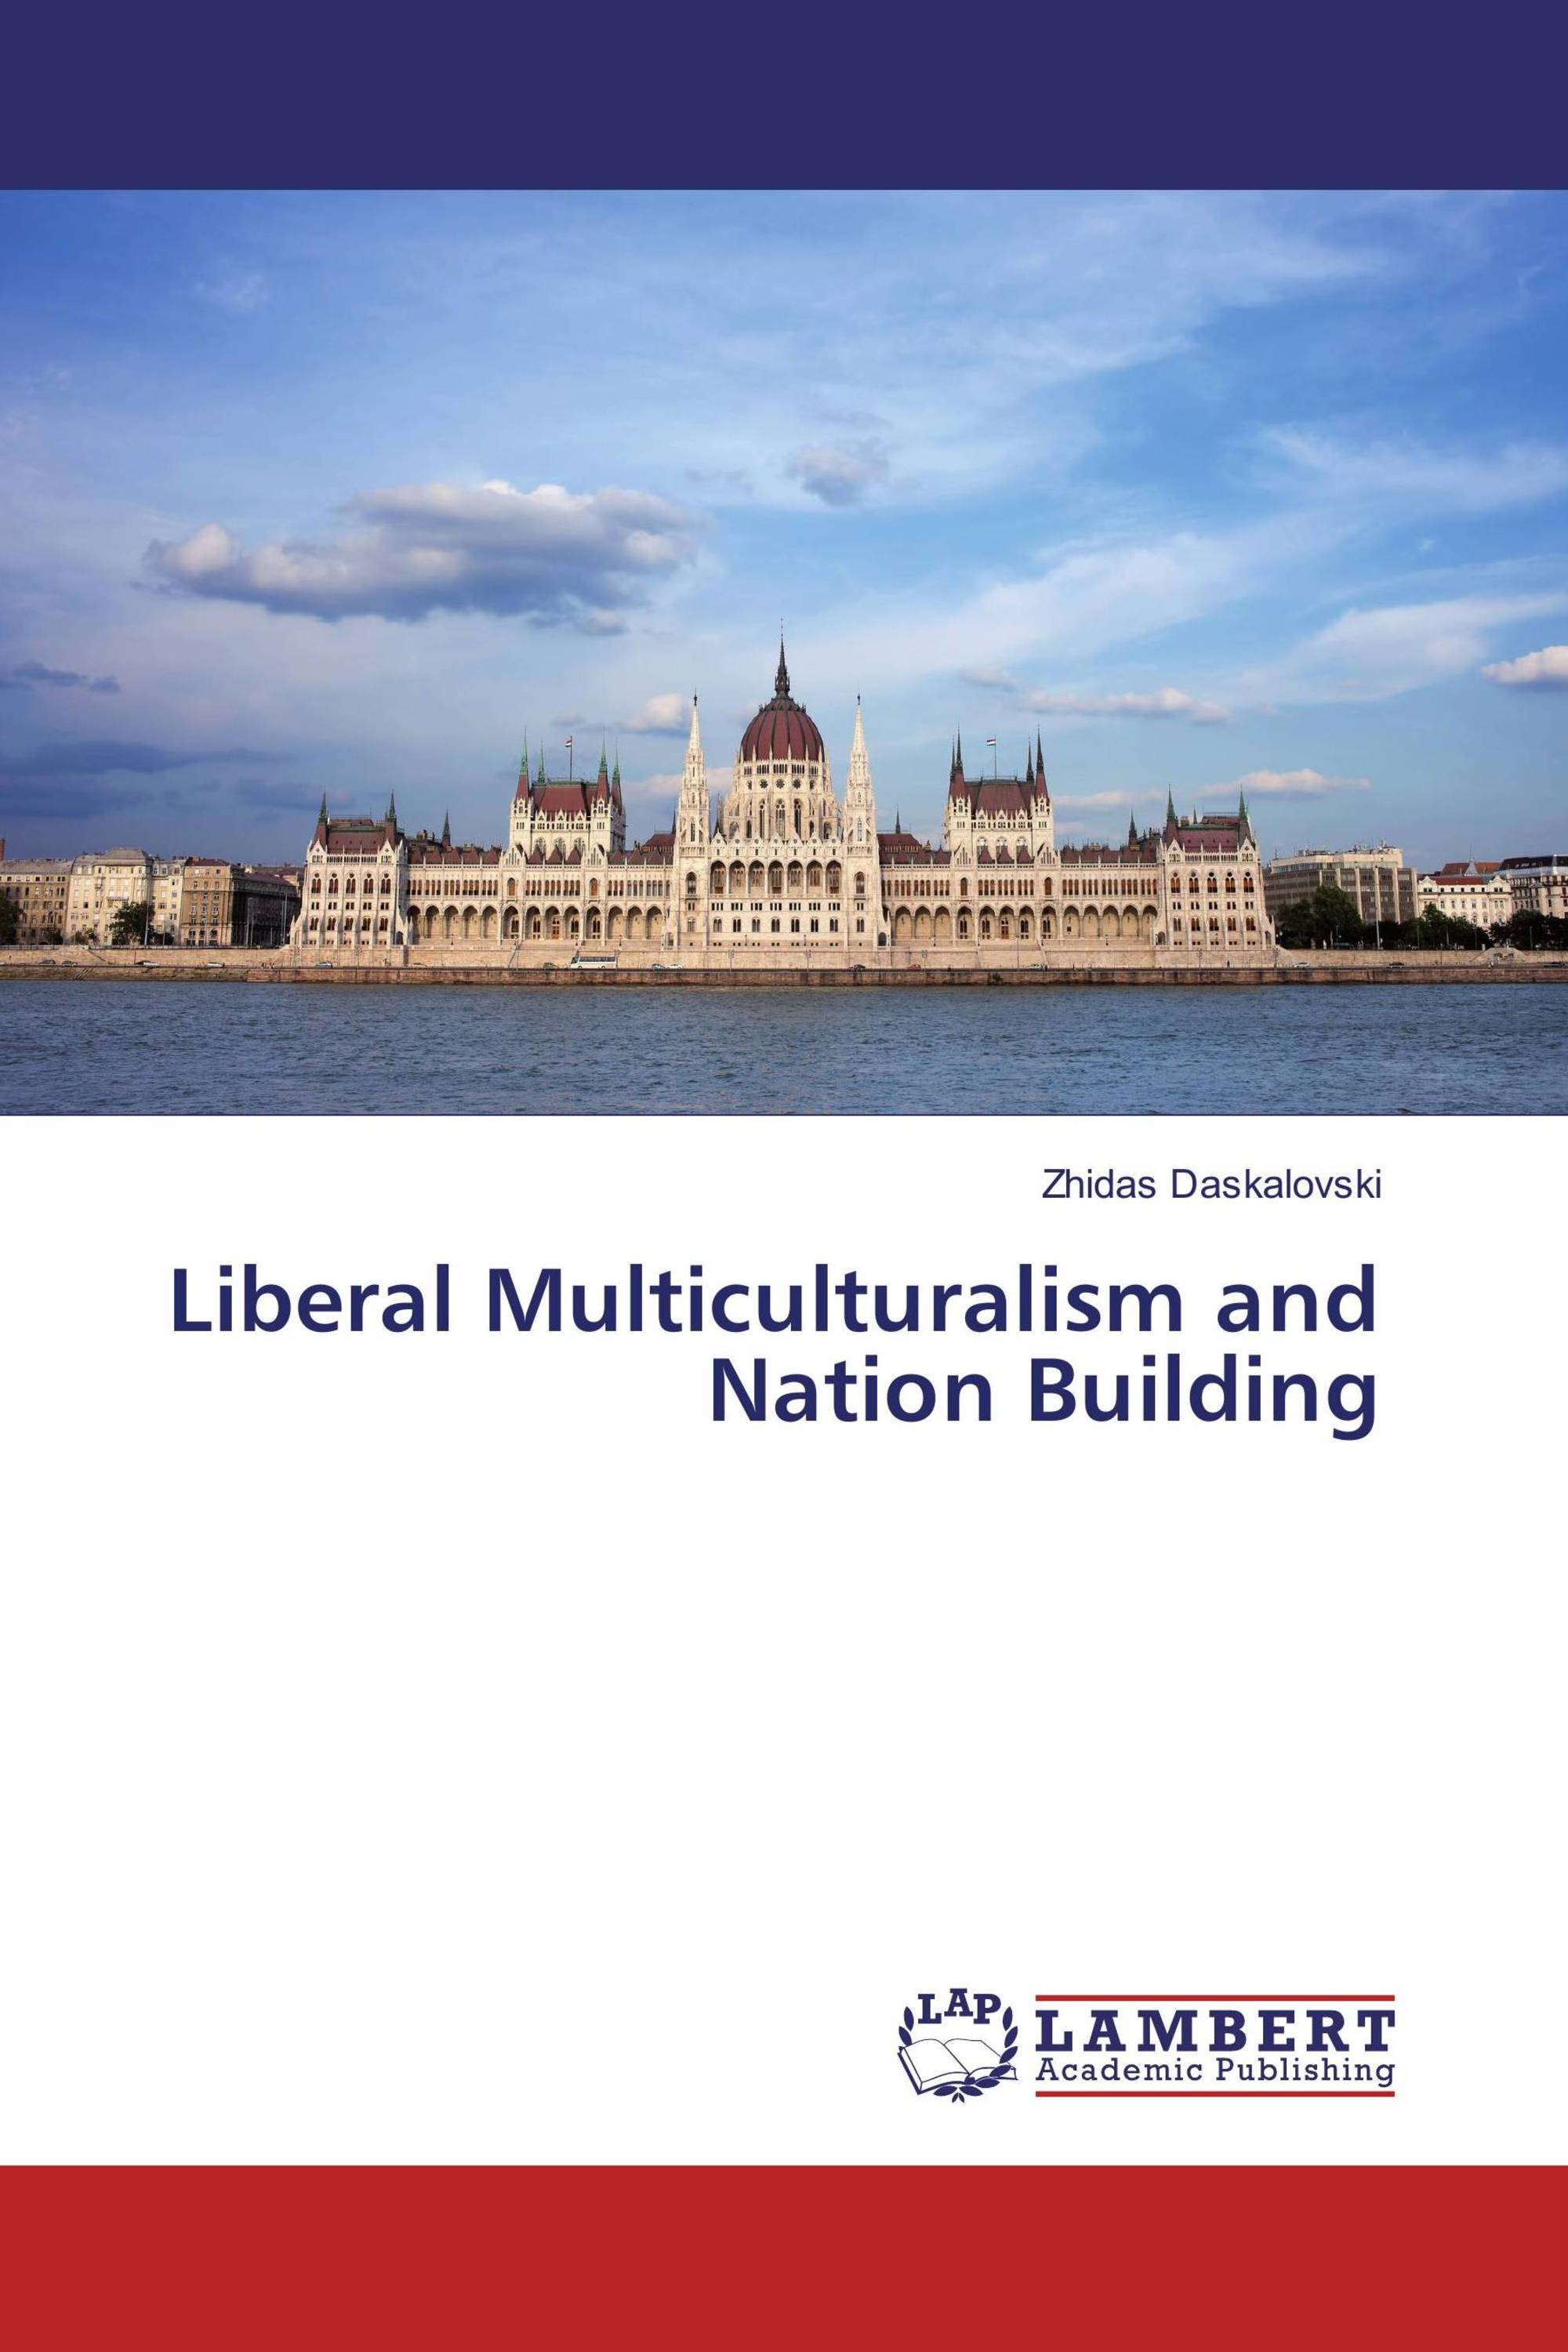 liberalism and multiculturalism